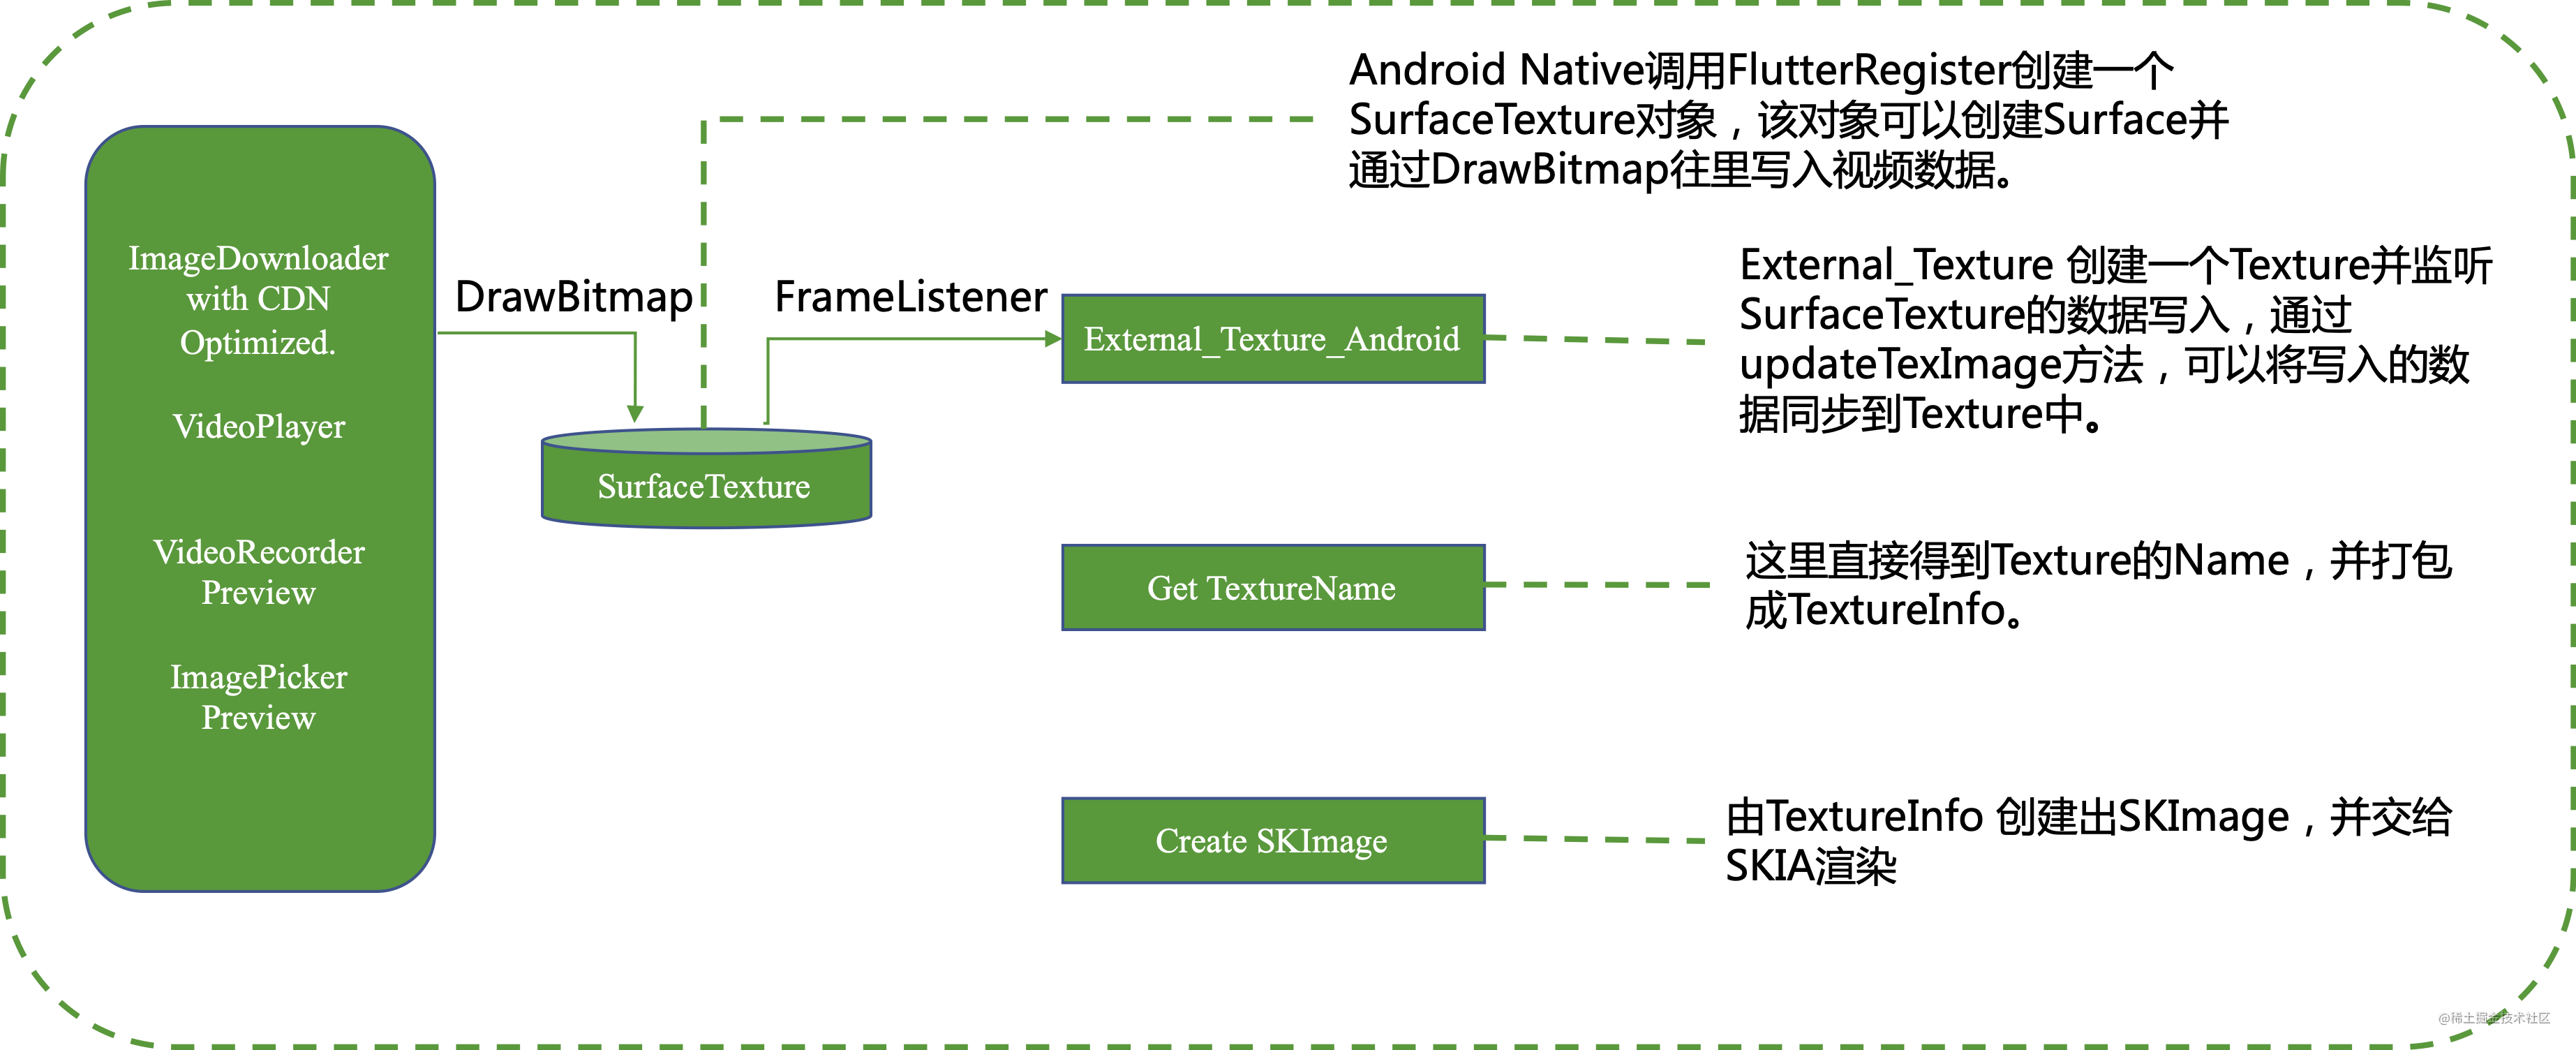 flutter-render-with-texture-layer-android